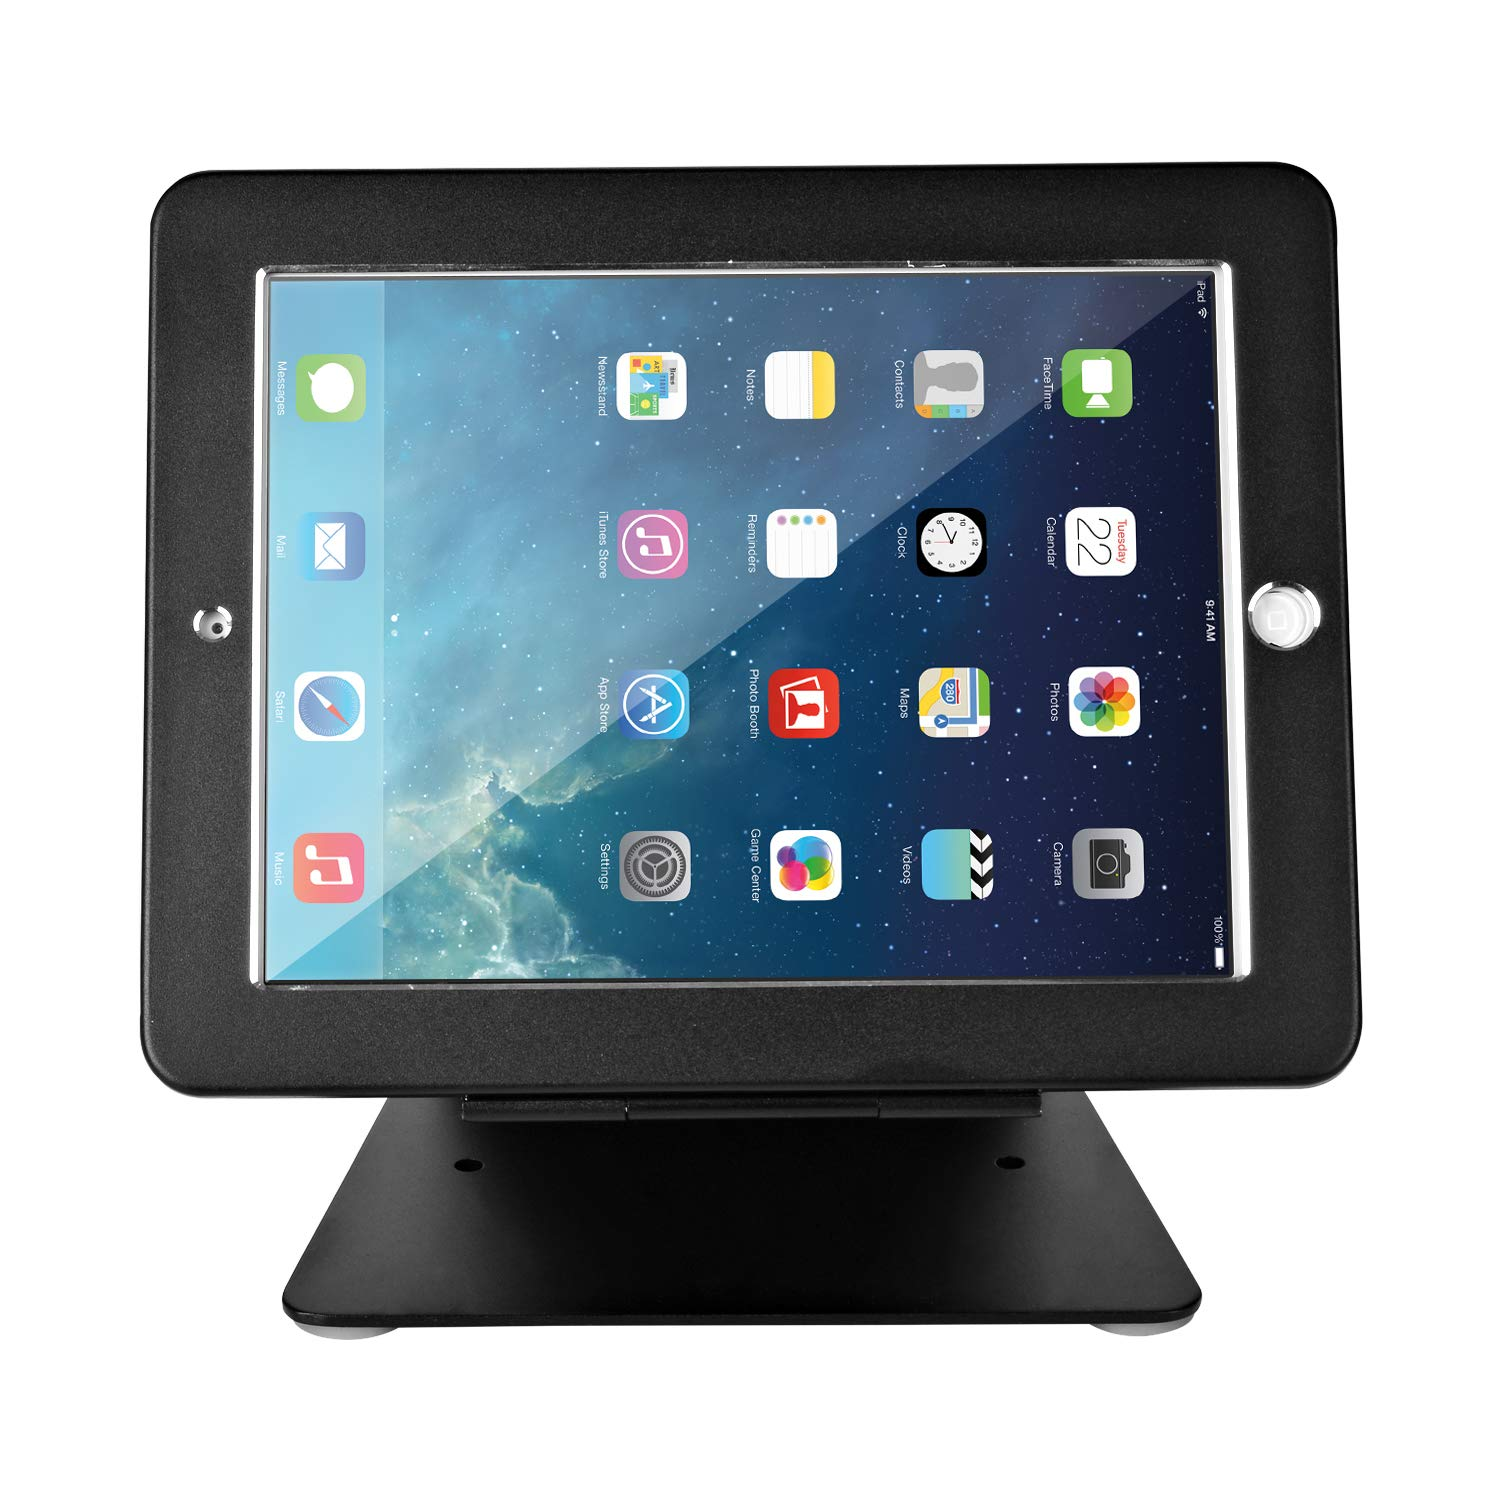 Firstand iPad Stand Holder, iPad Desktop Anti-Theft Security POS Stand Holder Enclosure with Lock and Key Compatible for iPad 2,3,4 and iPad air/air 2, iPad Pro 9.7'', 360 Degree Rotating (Black)